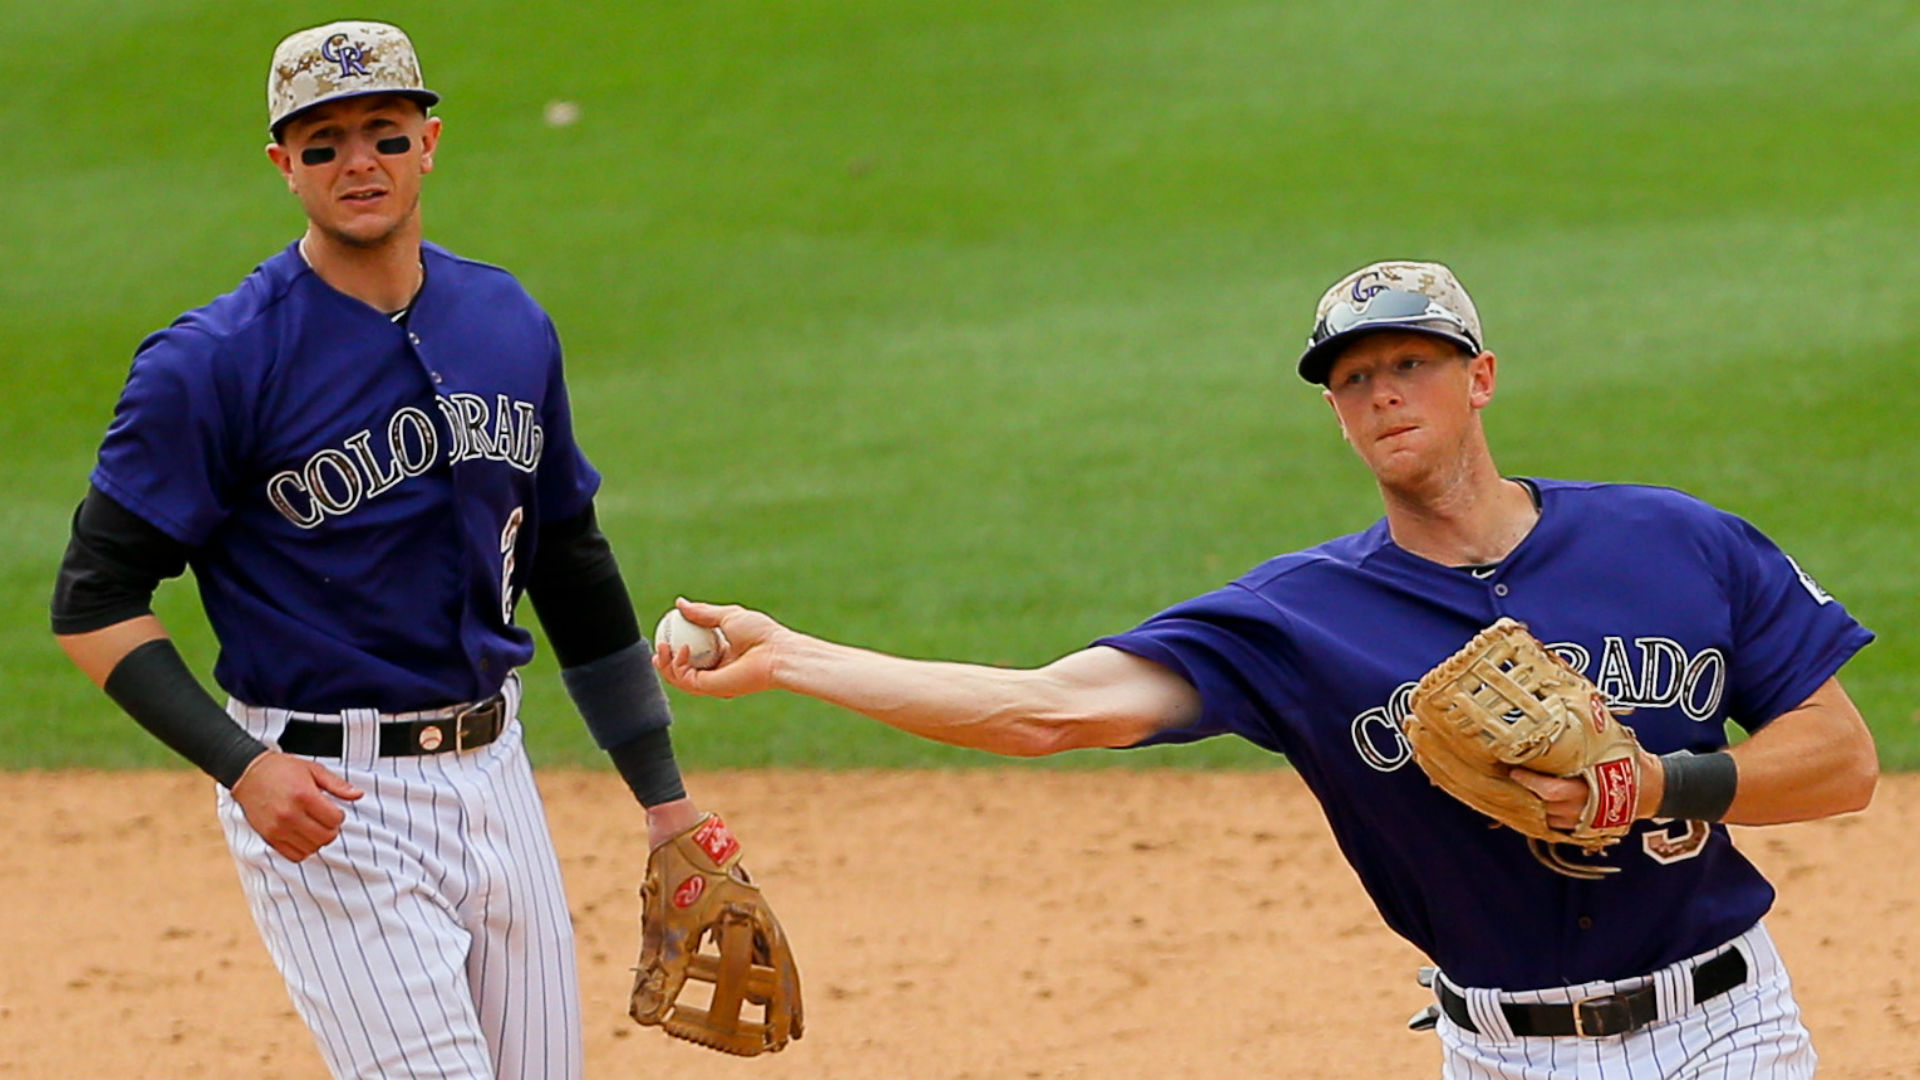 LeMahieu would join former Rockies teammate Troy Tulowitzki in New York's infield.